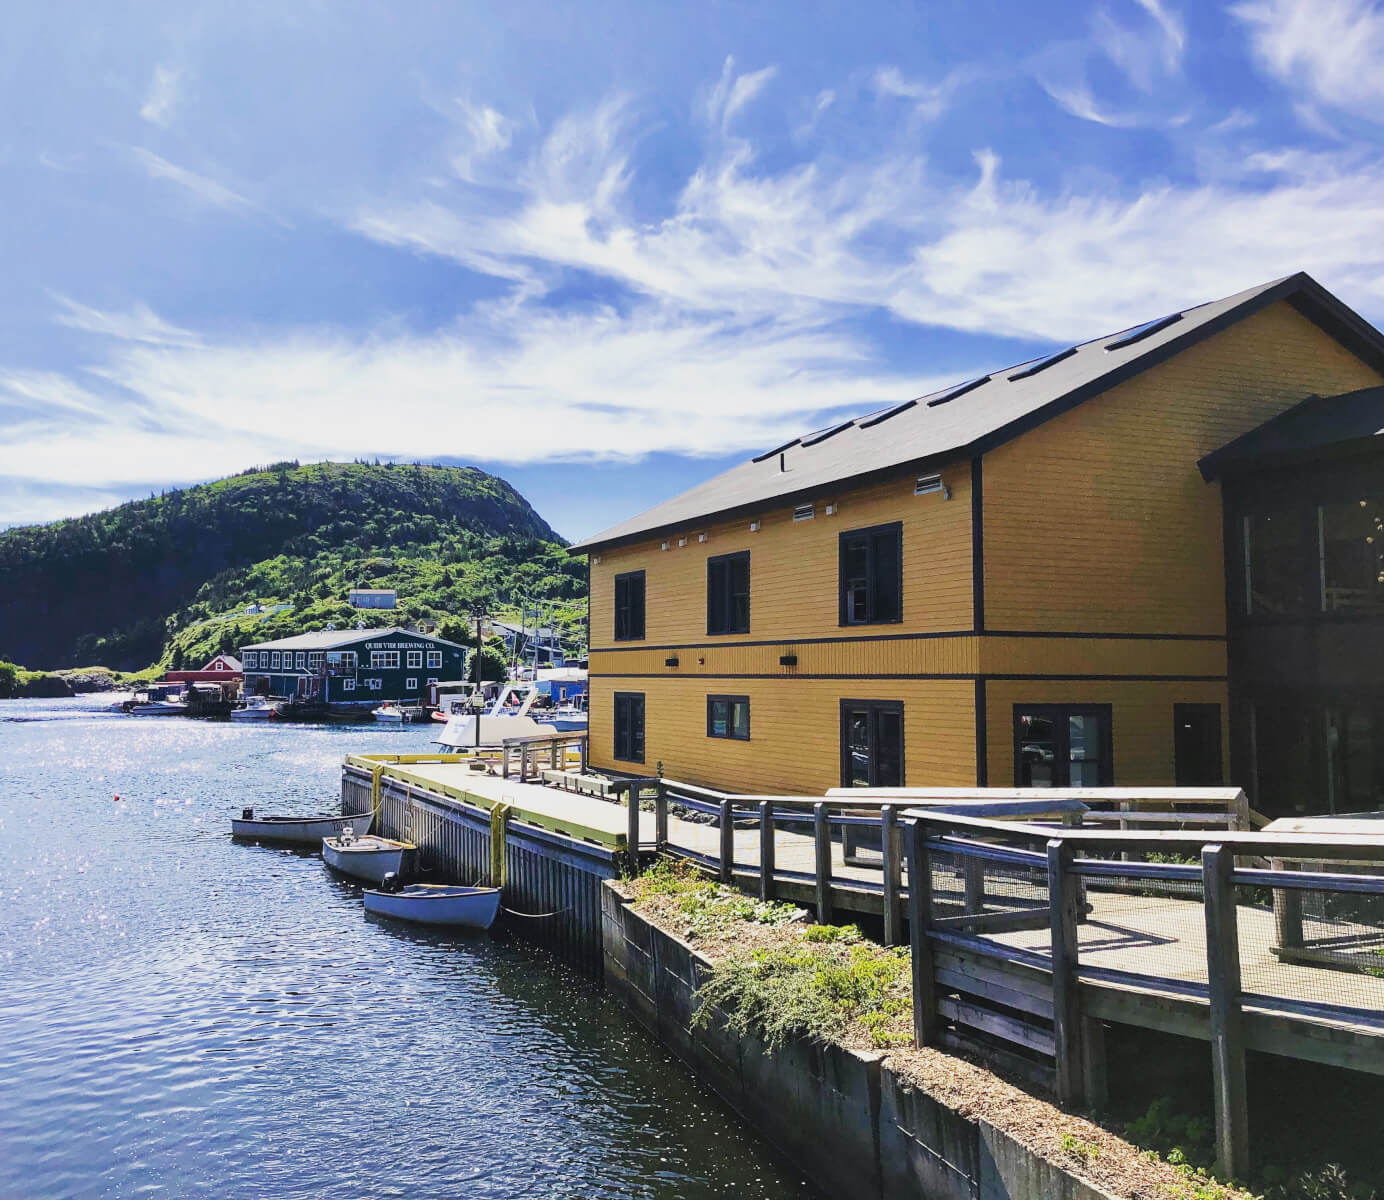 A Day in Quidi Vidi - image